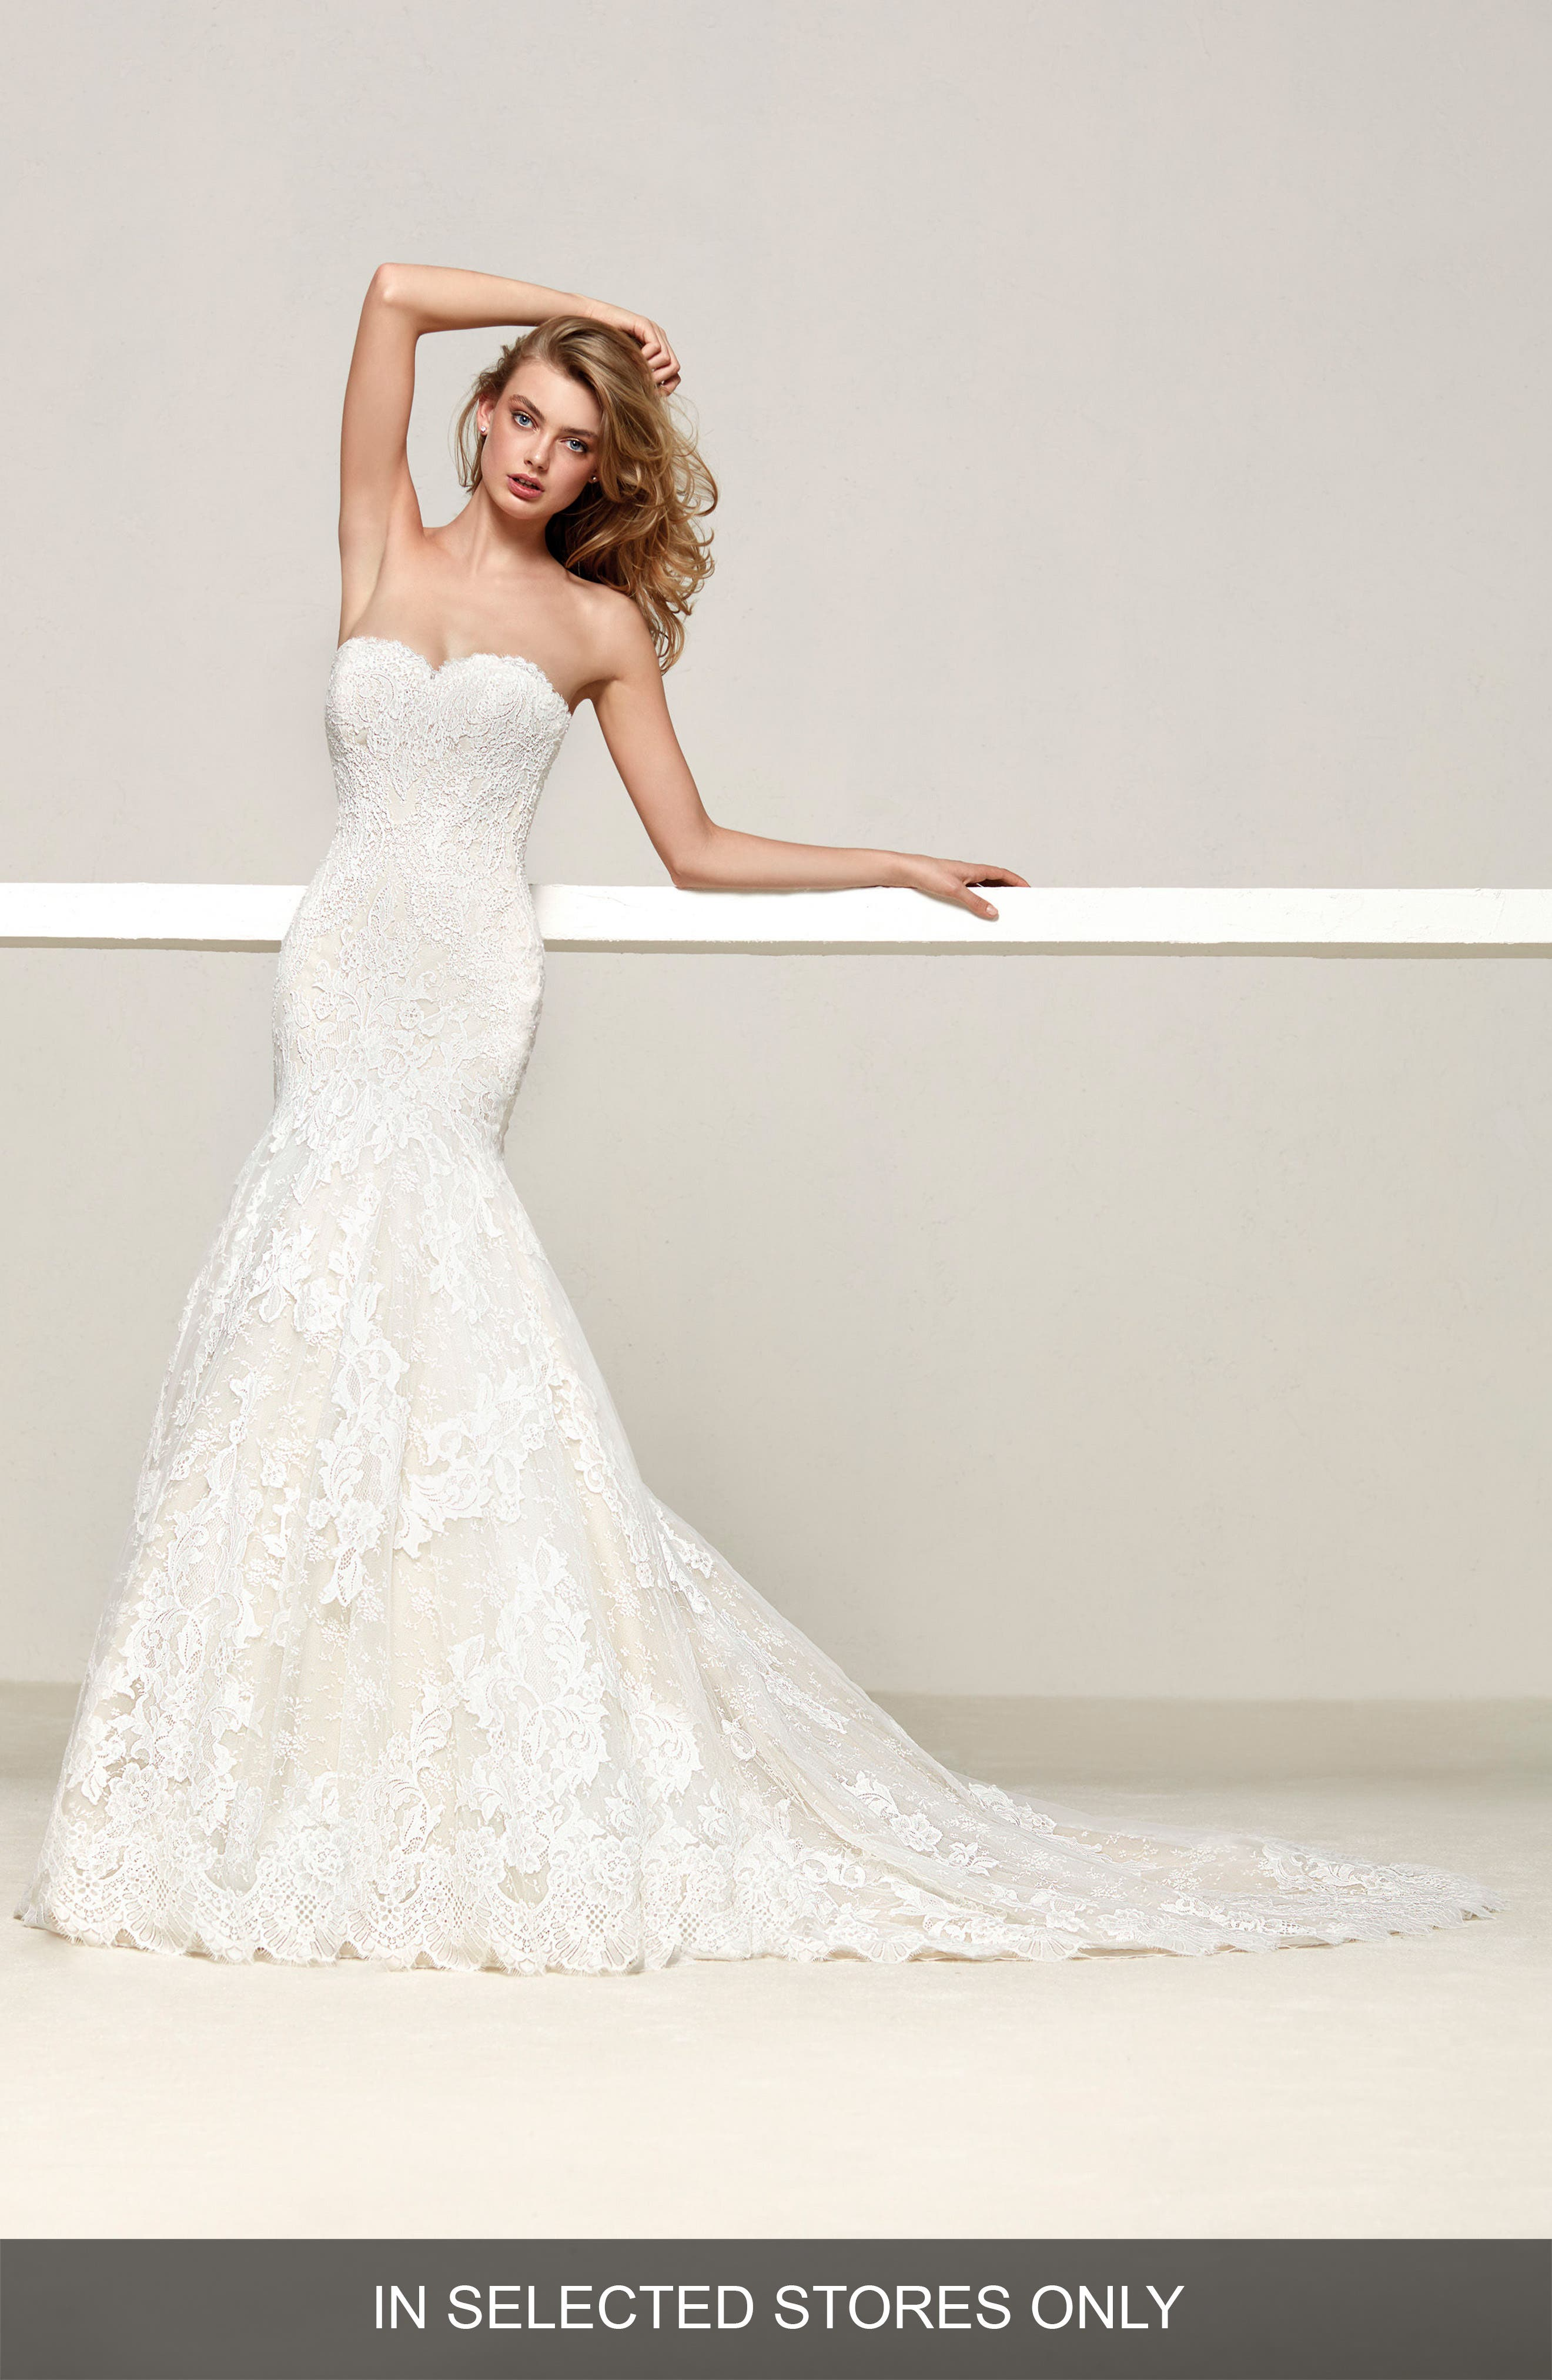 Druida Sweetheart Strapless Lace Mermaid Gown,                         Main,                         color, OFF WHITE